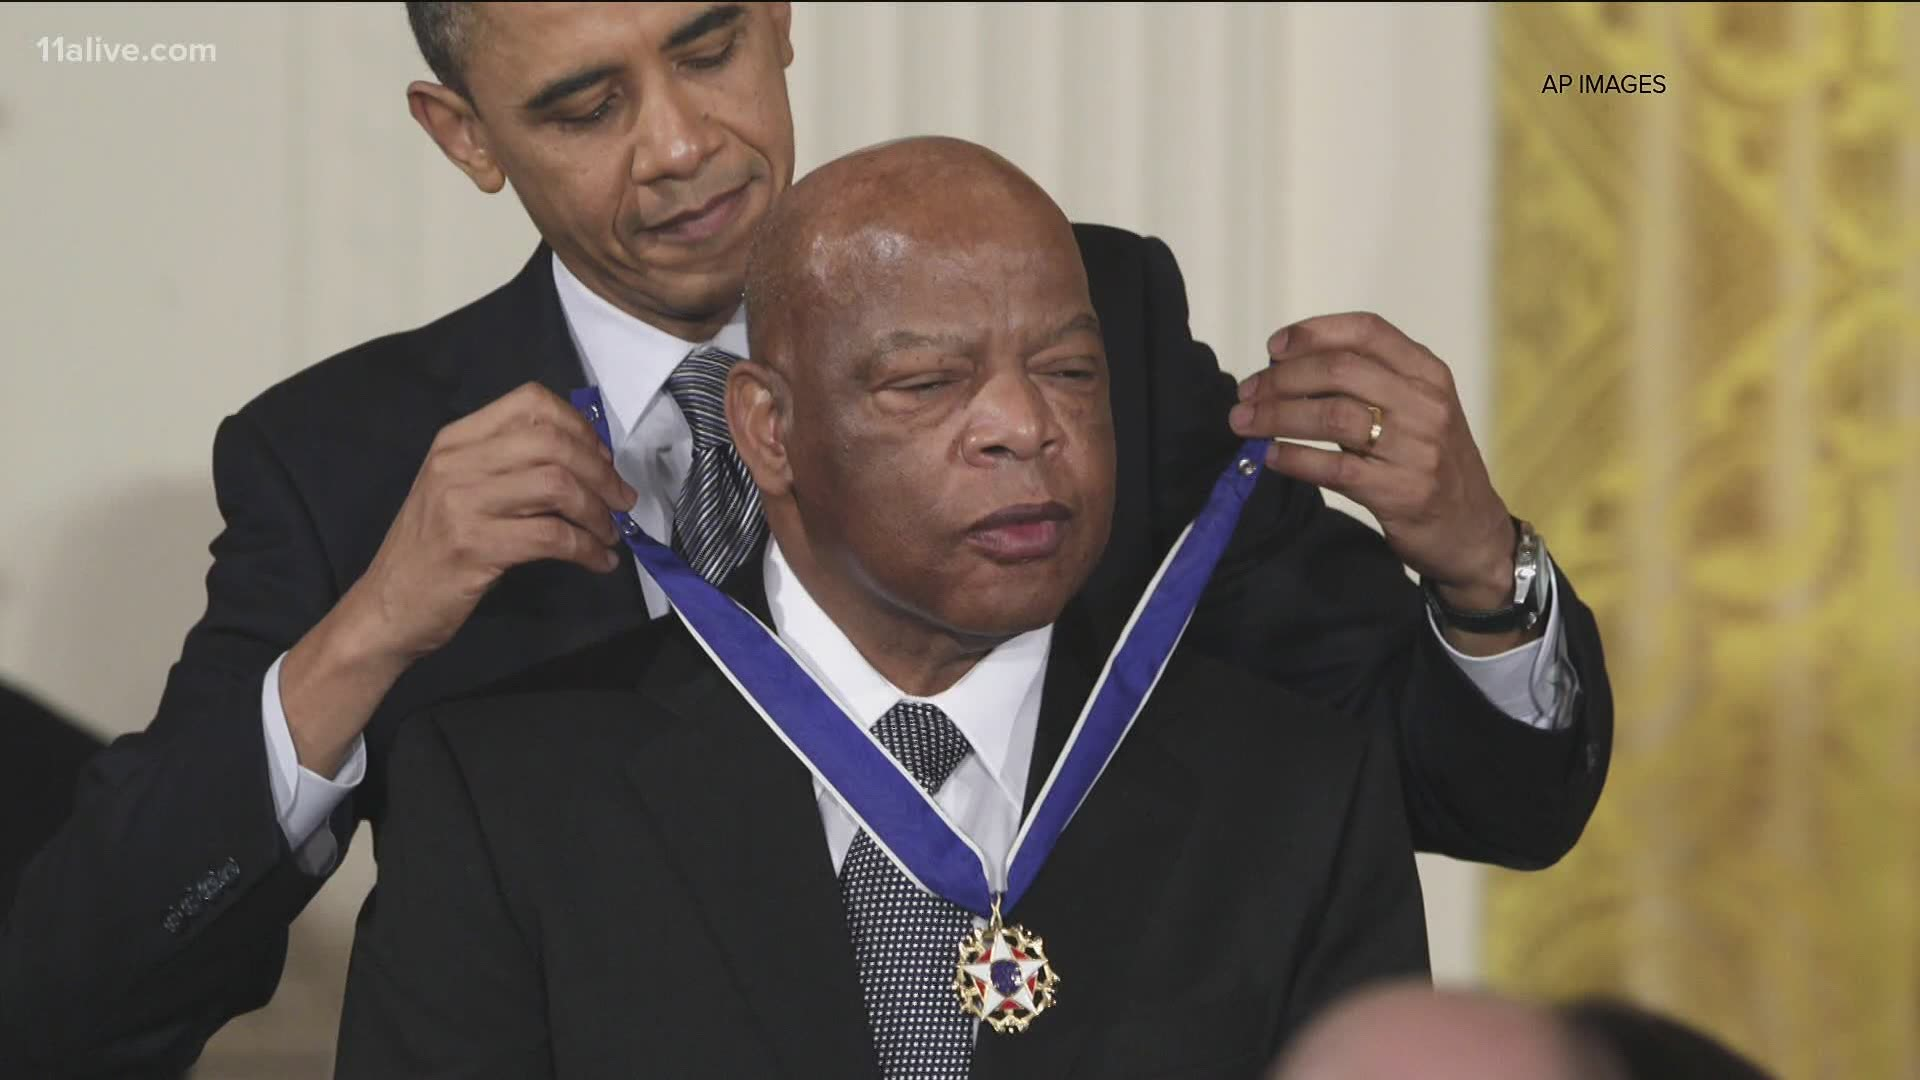 John Lewis is not dead, spokesperson says | 11alive.com